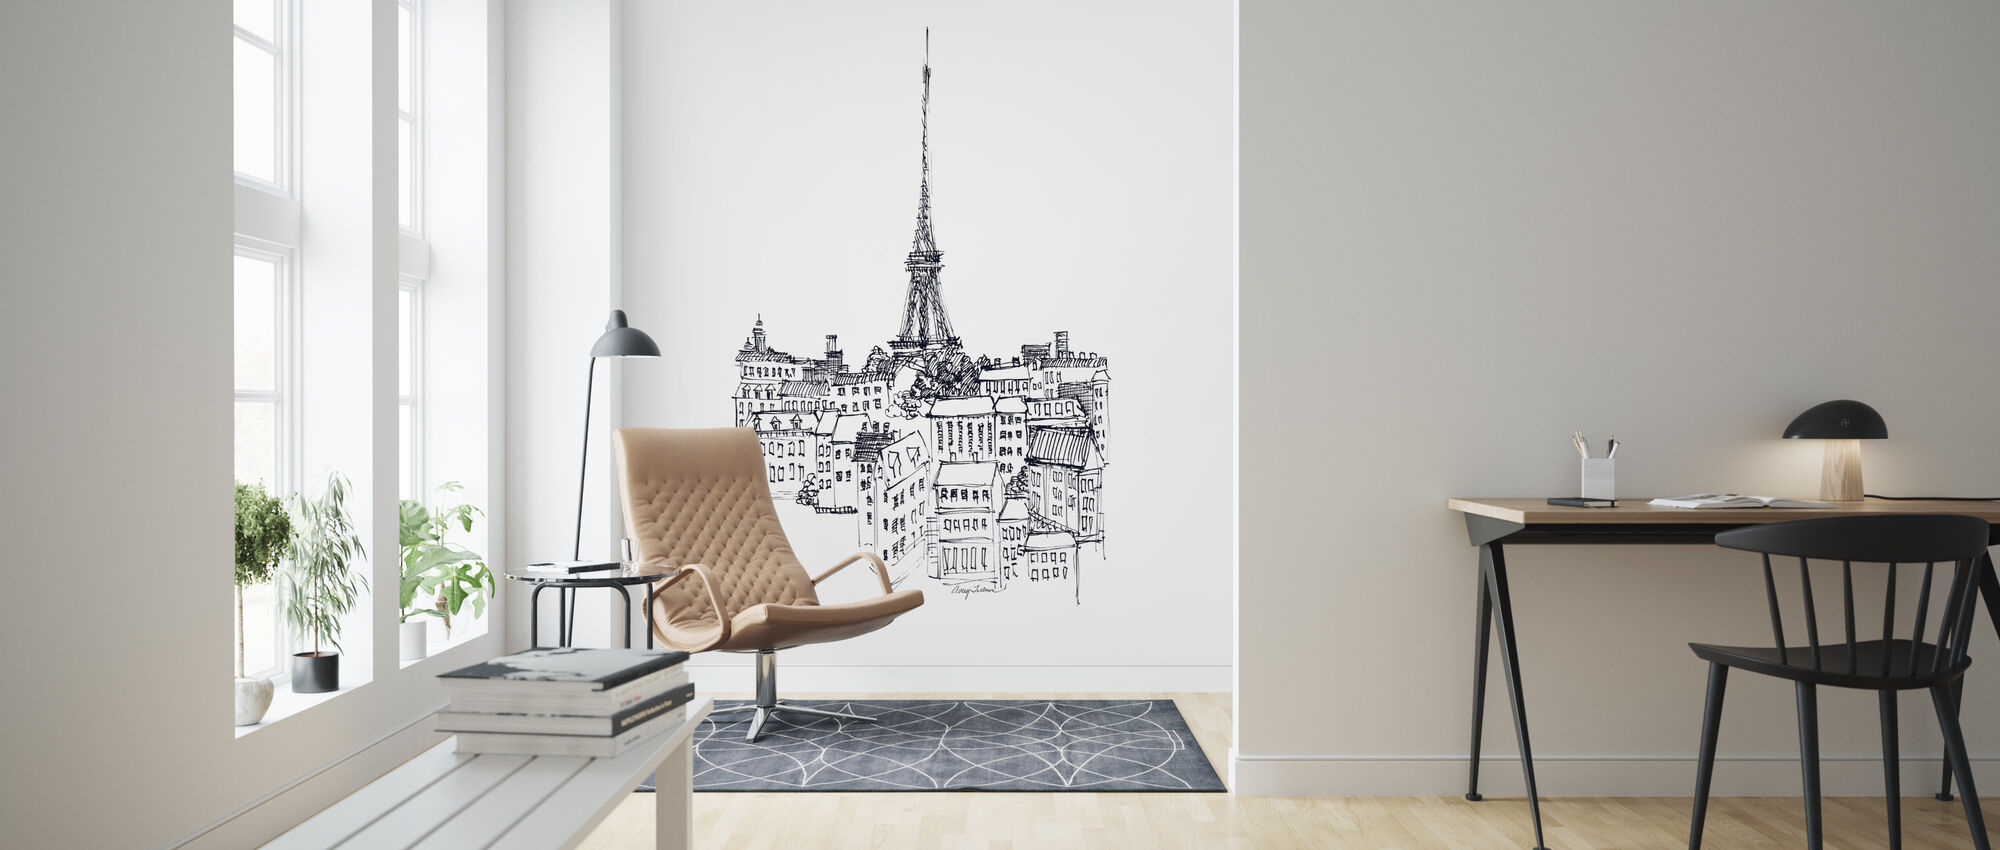 Avery Tillmon - Eiffel Tower - Wallpaper - Living Room